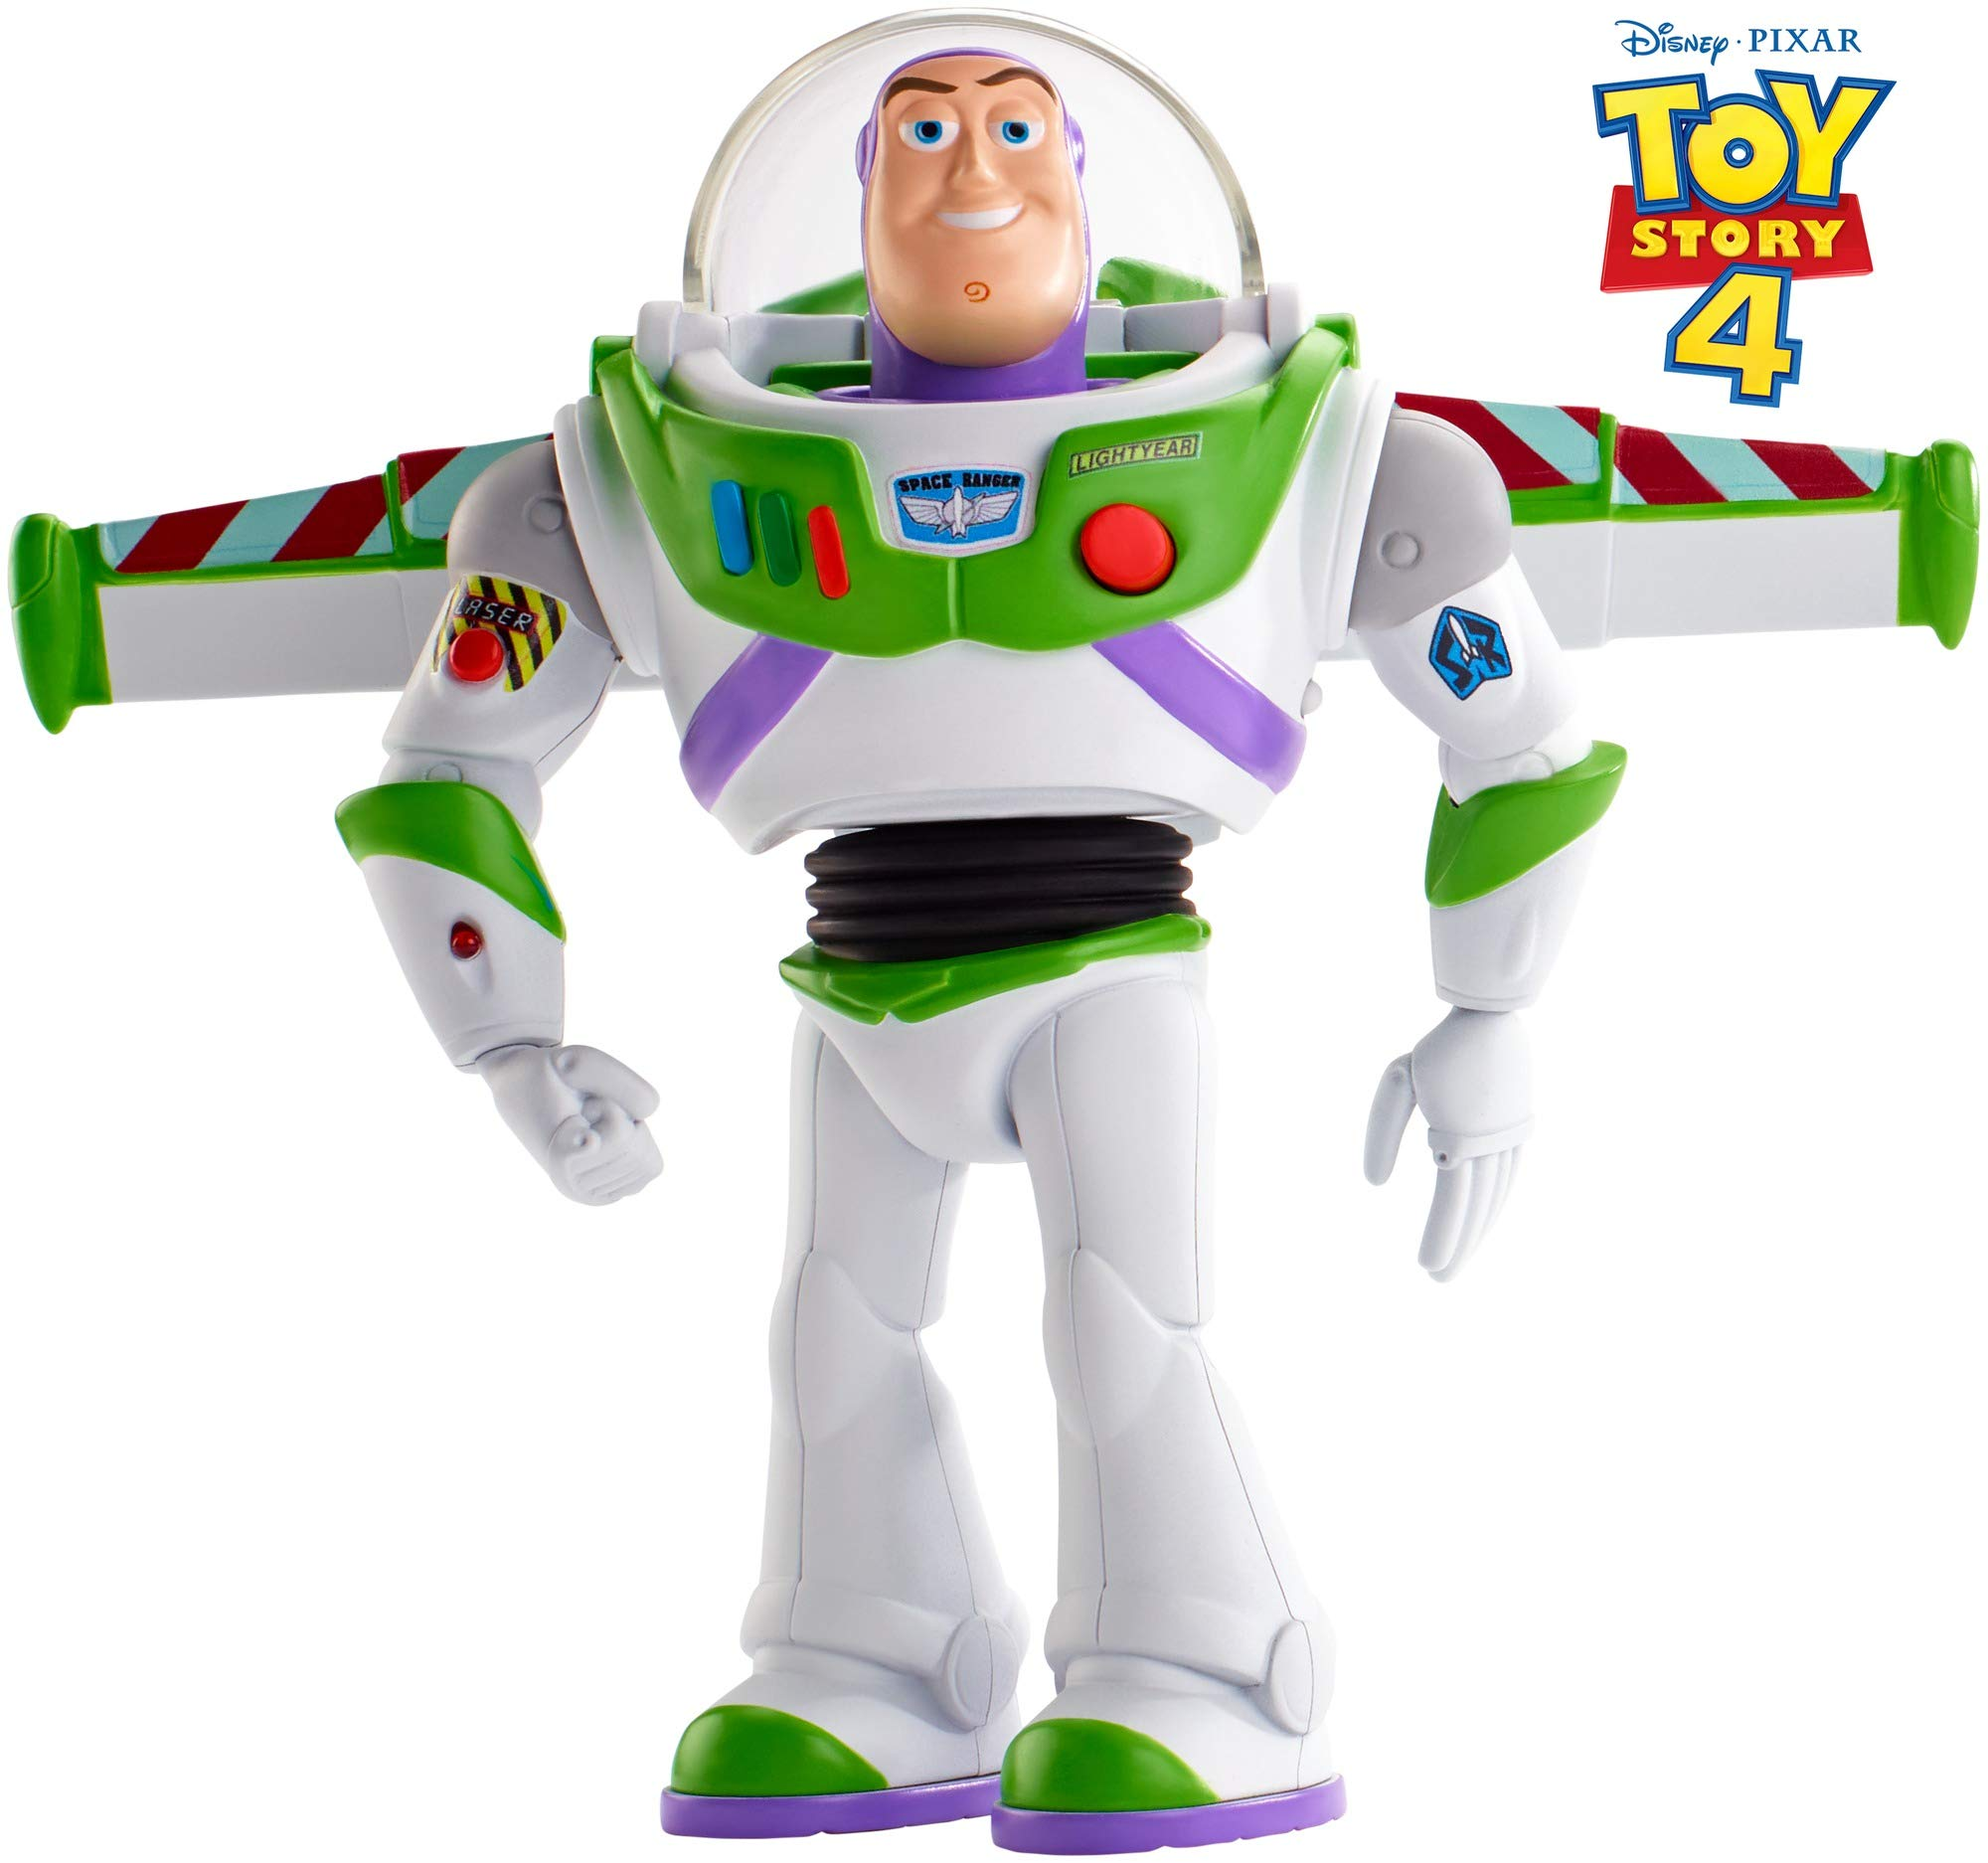 Disney Pixar Toy Story Ultimate Walking Buzz Lightyear, 7'' by Toy Story (Image #1)